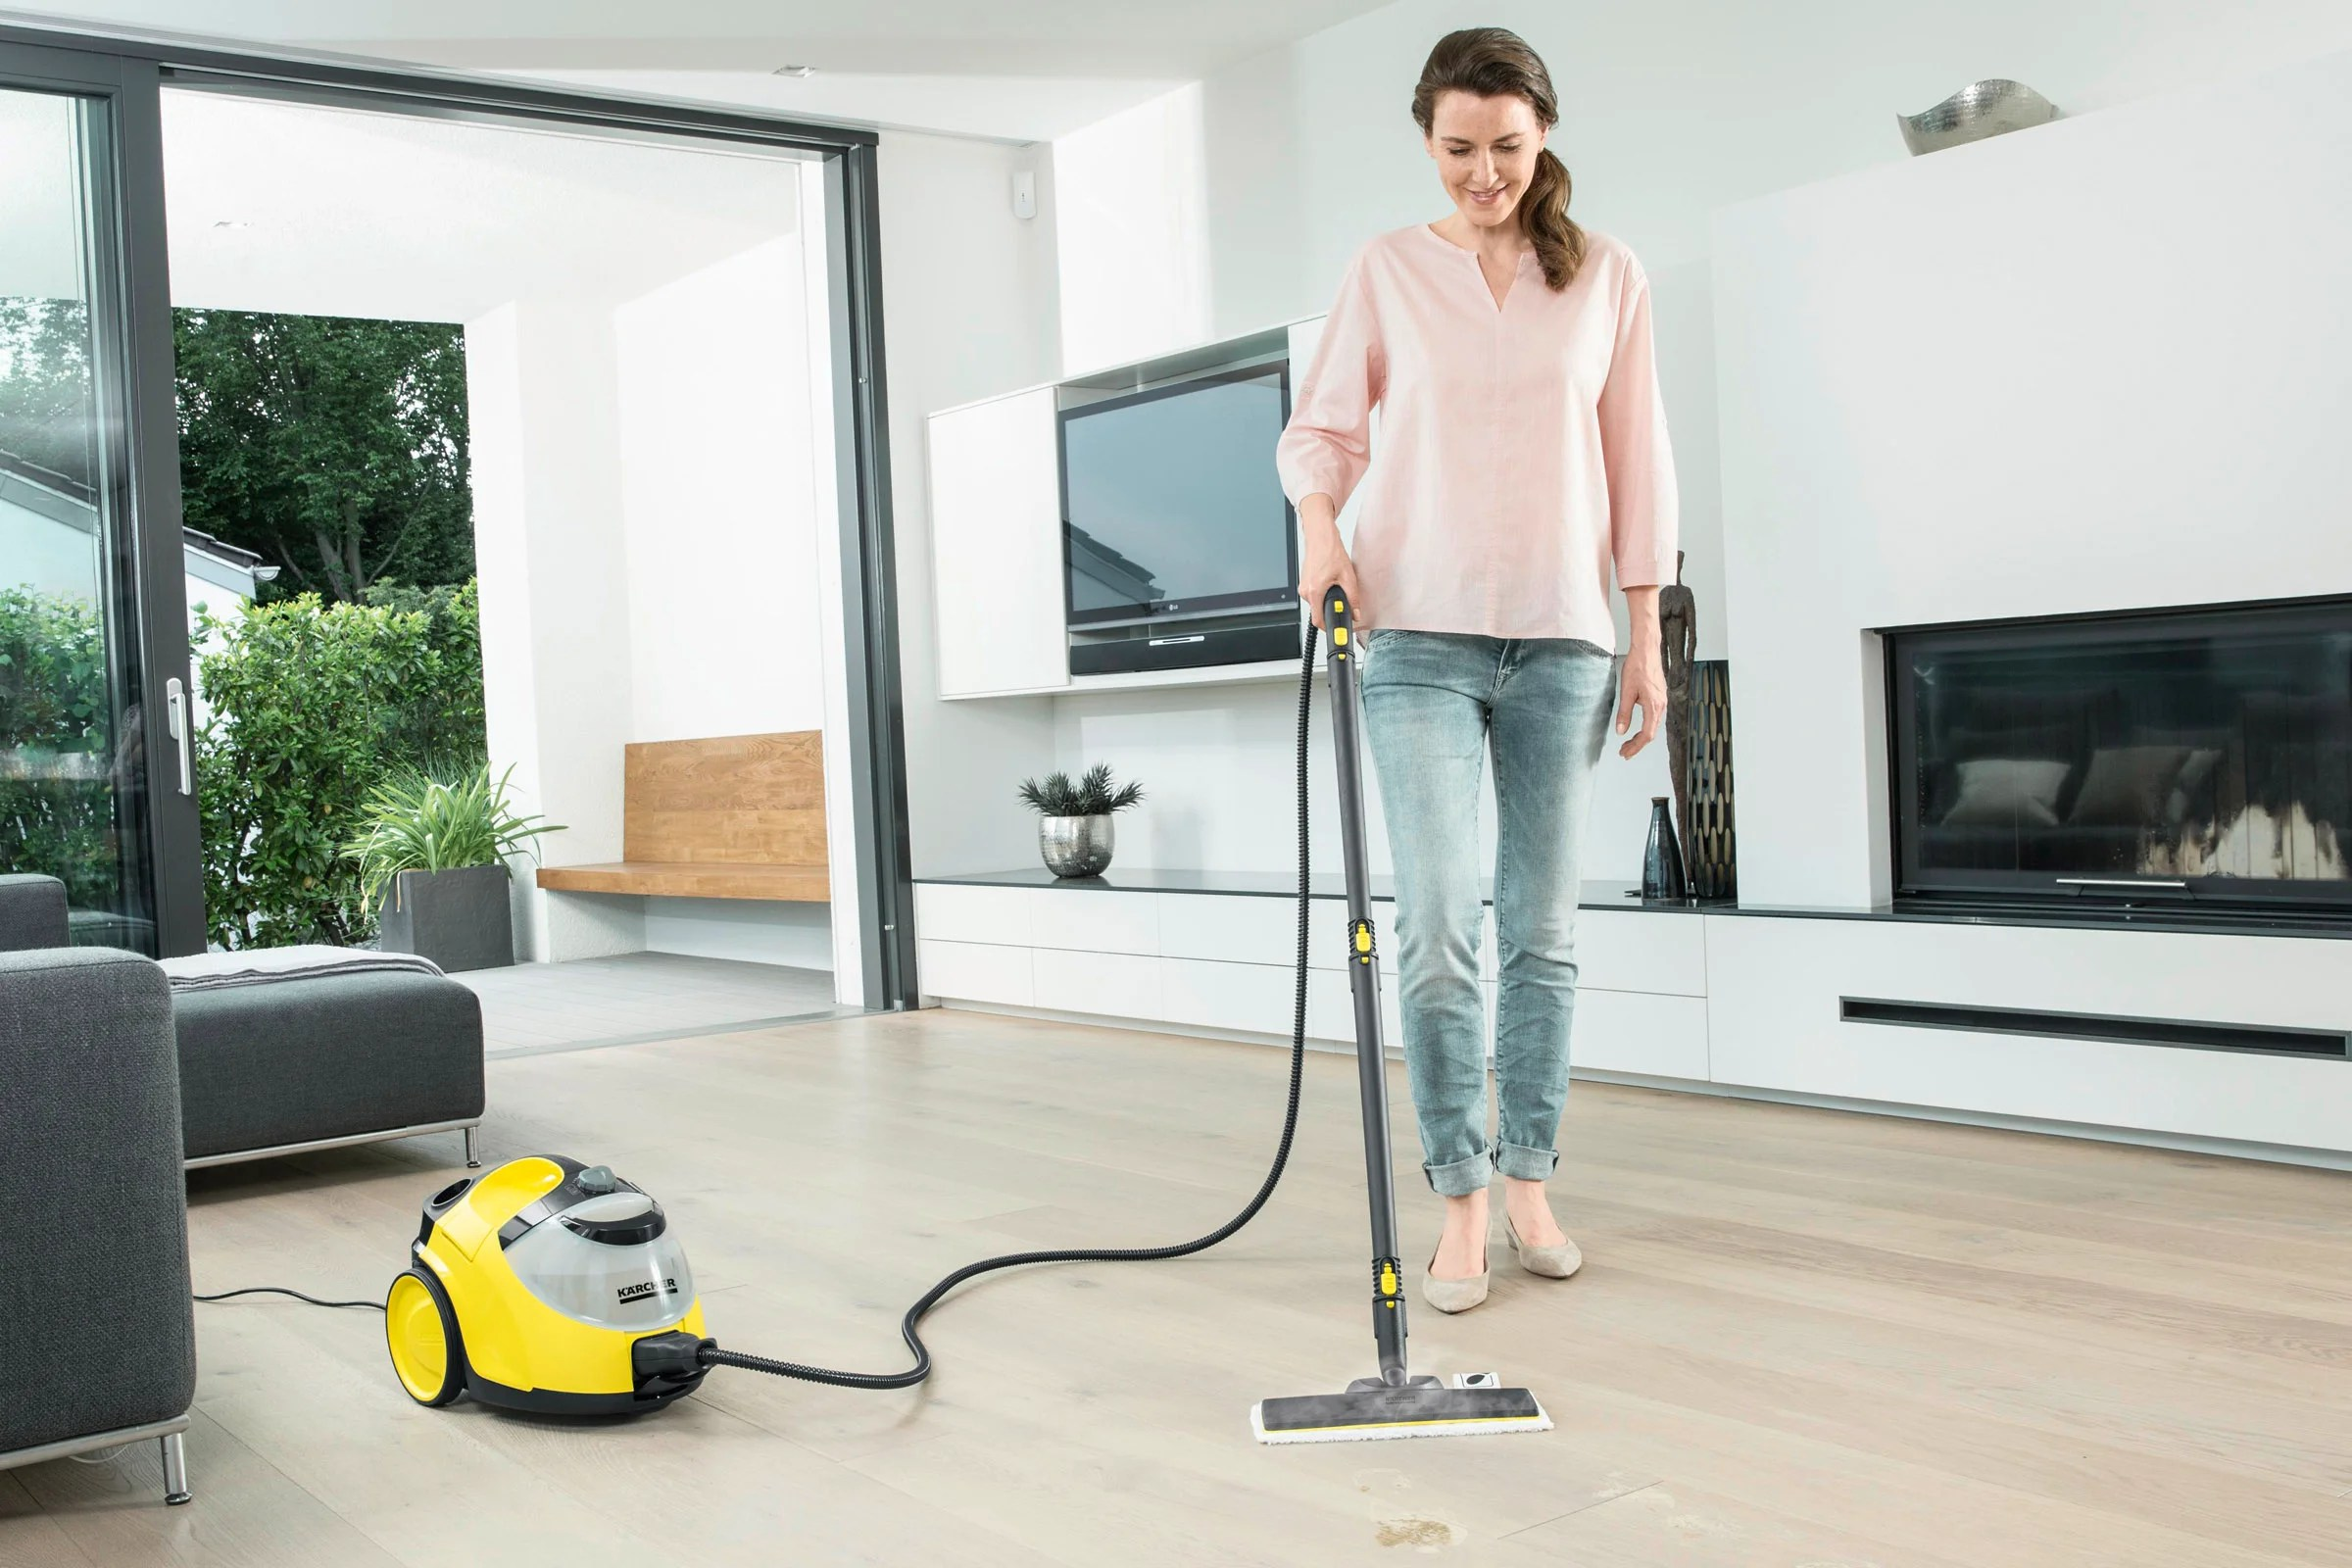 Karcher SC5 1 Best steam cleaners 2020: The best for carpet, tiles, floors and more